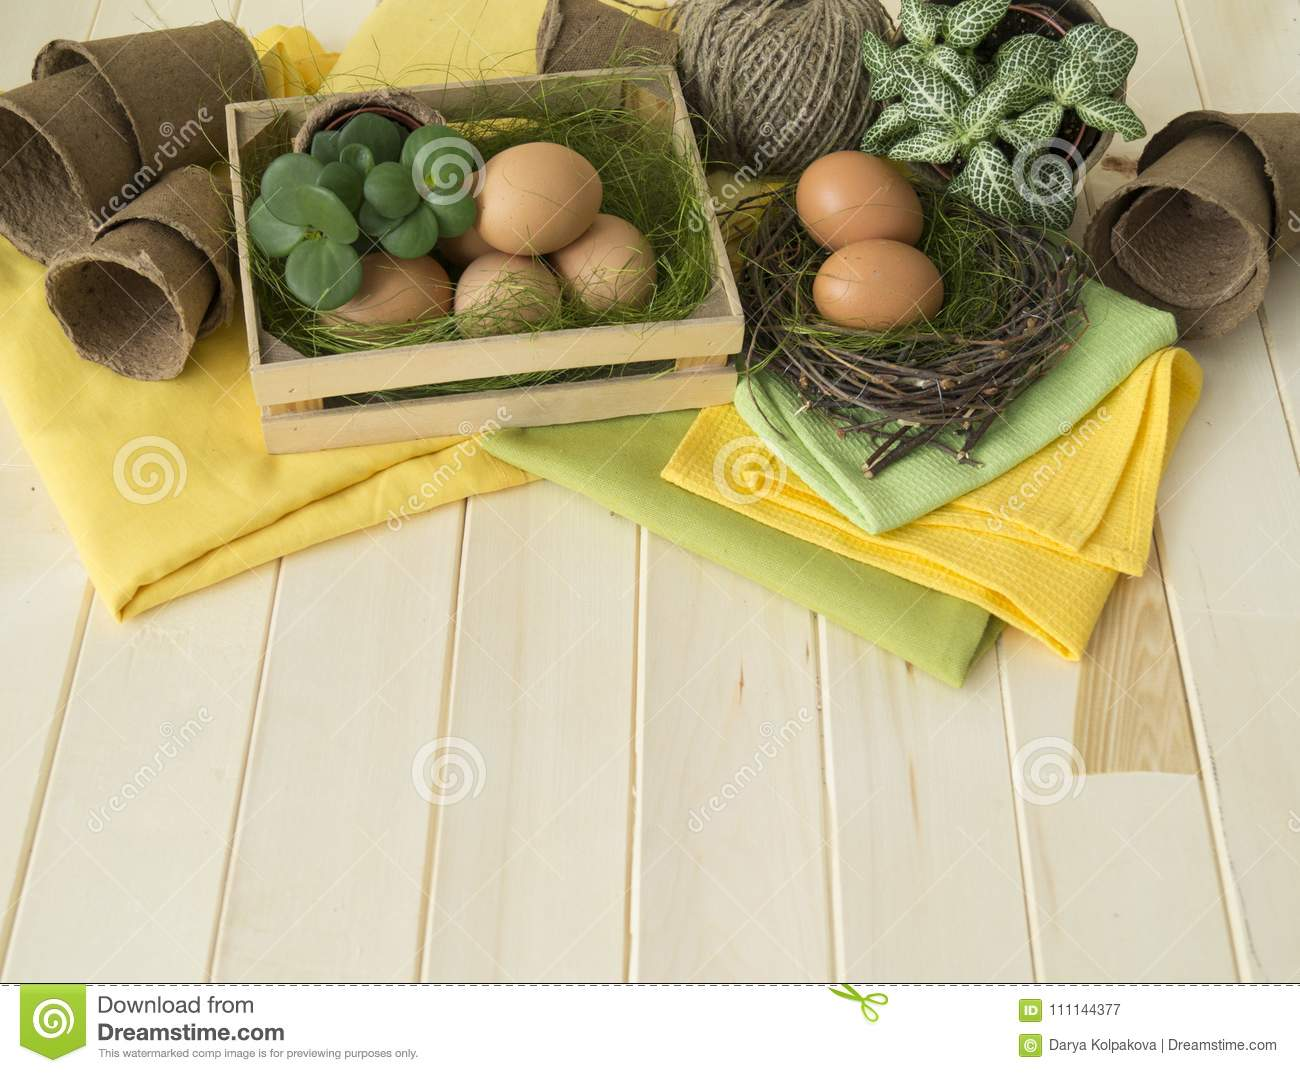 Easter holiday. Decorative Easter arrangement with flowers, plants, pots and eggs. Colors are brown, yellow, green, beige, olive a